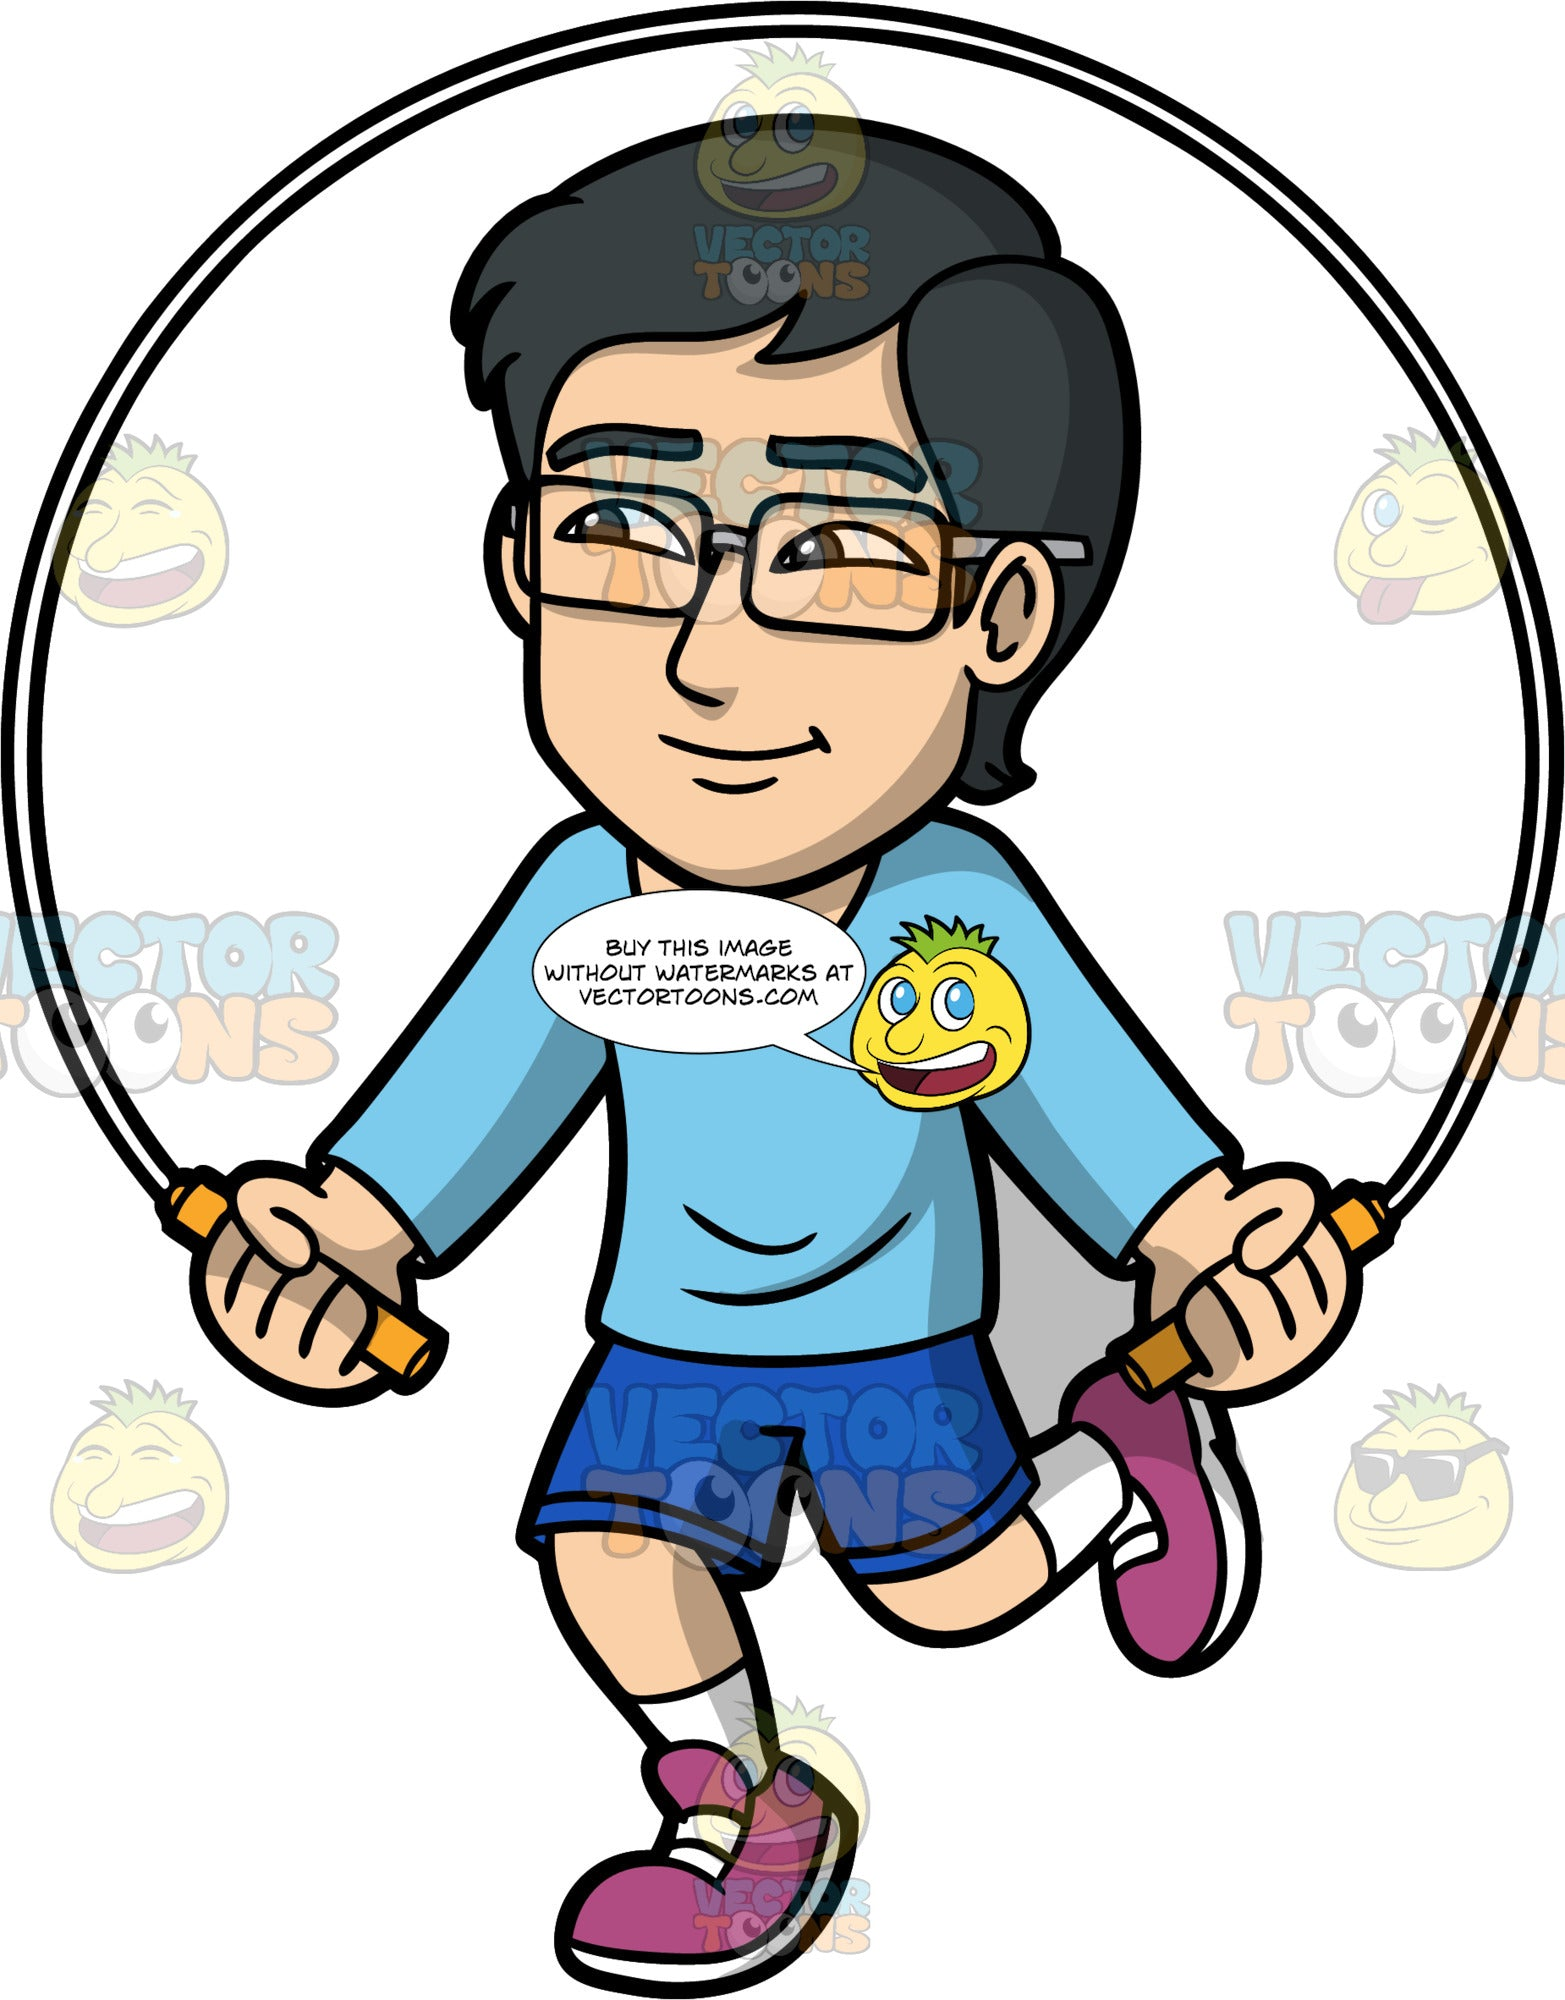 Simon Using A Skipping Rope. An Asian man wearing dark blue shorts, a long sleeve light blue shirt, purple running shoes, and eyeglasses, having fun jumping rope